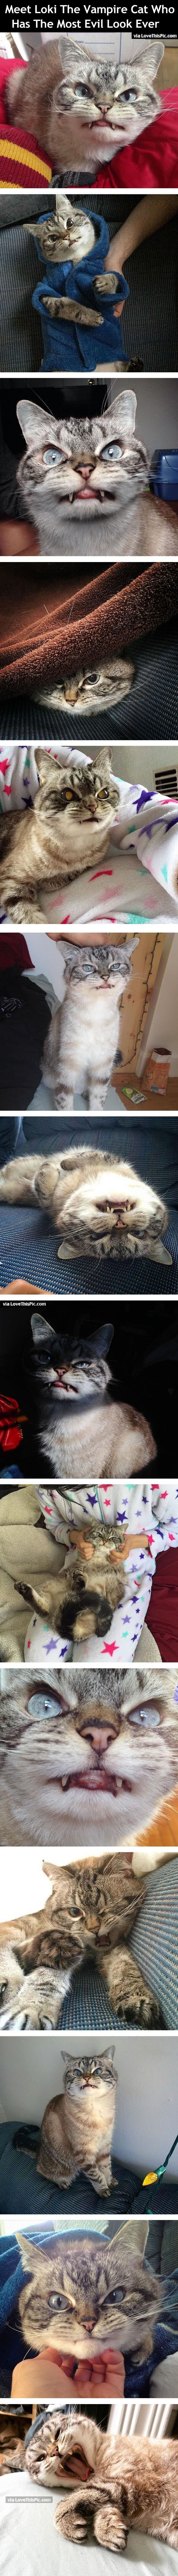 Meet Loki The Vampire Cat Who Has The Most Evil Look Ever cute animals cat cats adorable animal kittens pets kitten funny pictures funny animals funny cats